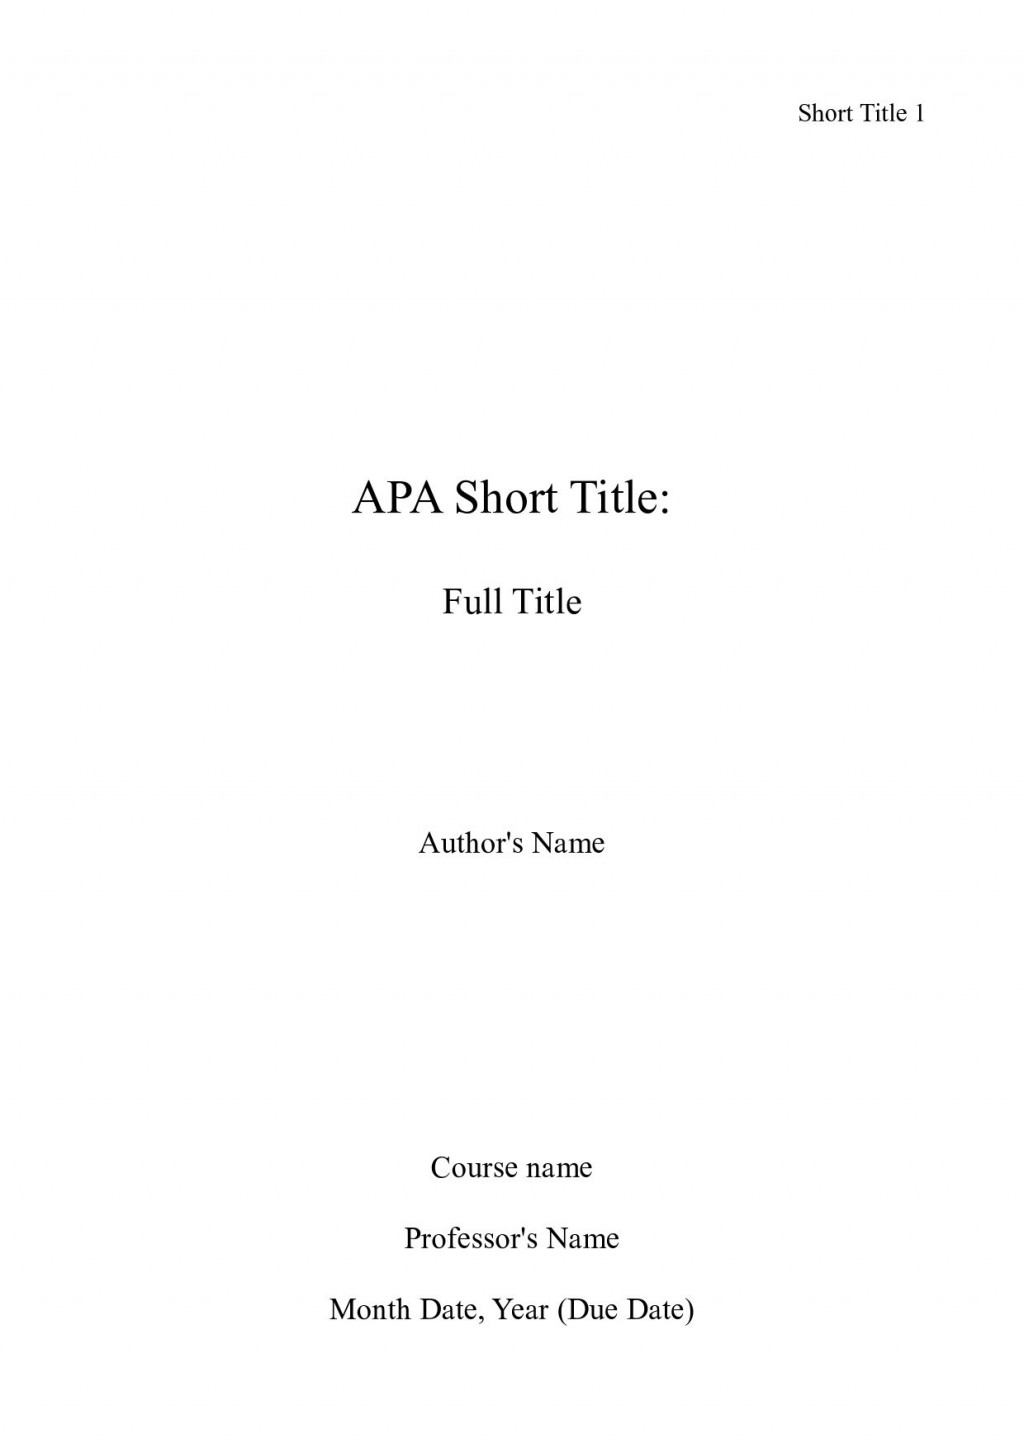 003 Research Paper Cover Page Apa Excellent Template Layout Format Sample Title Large